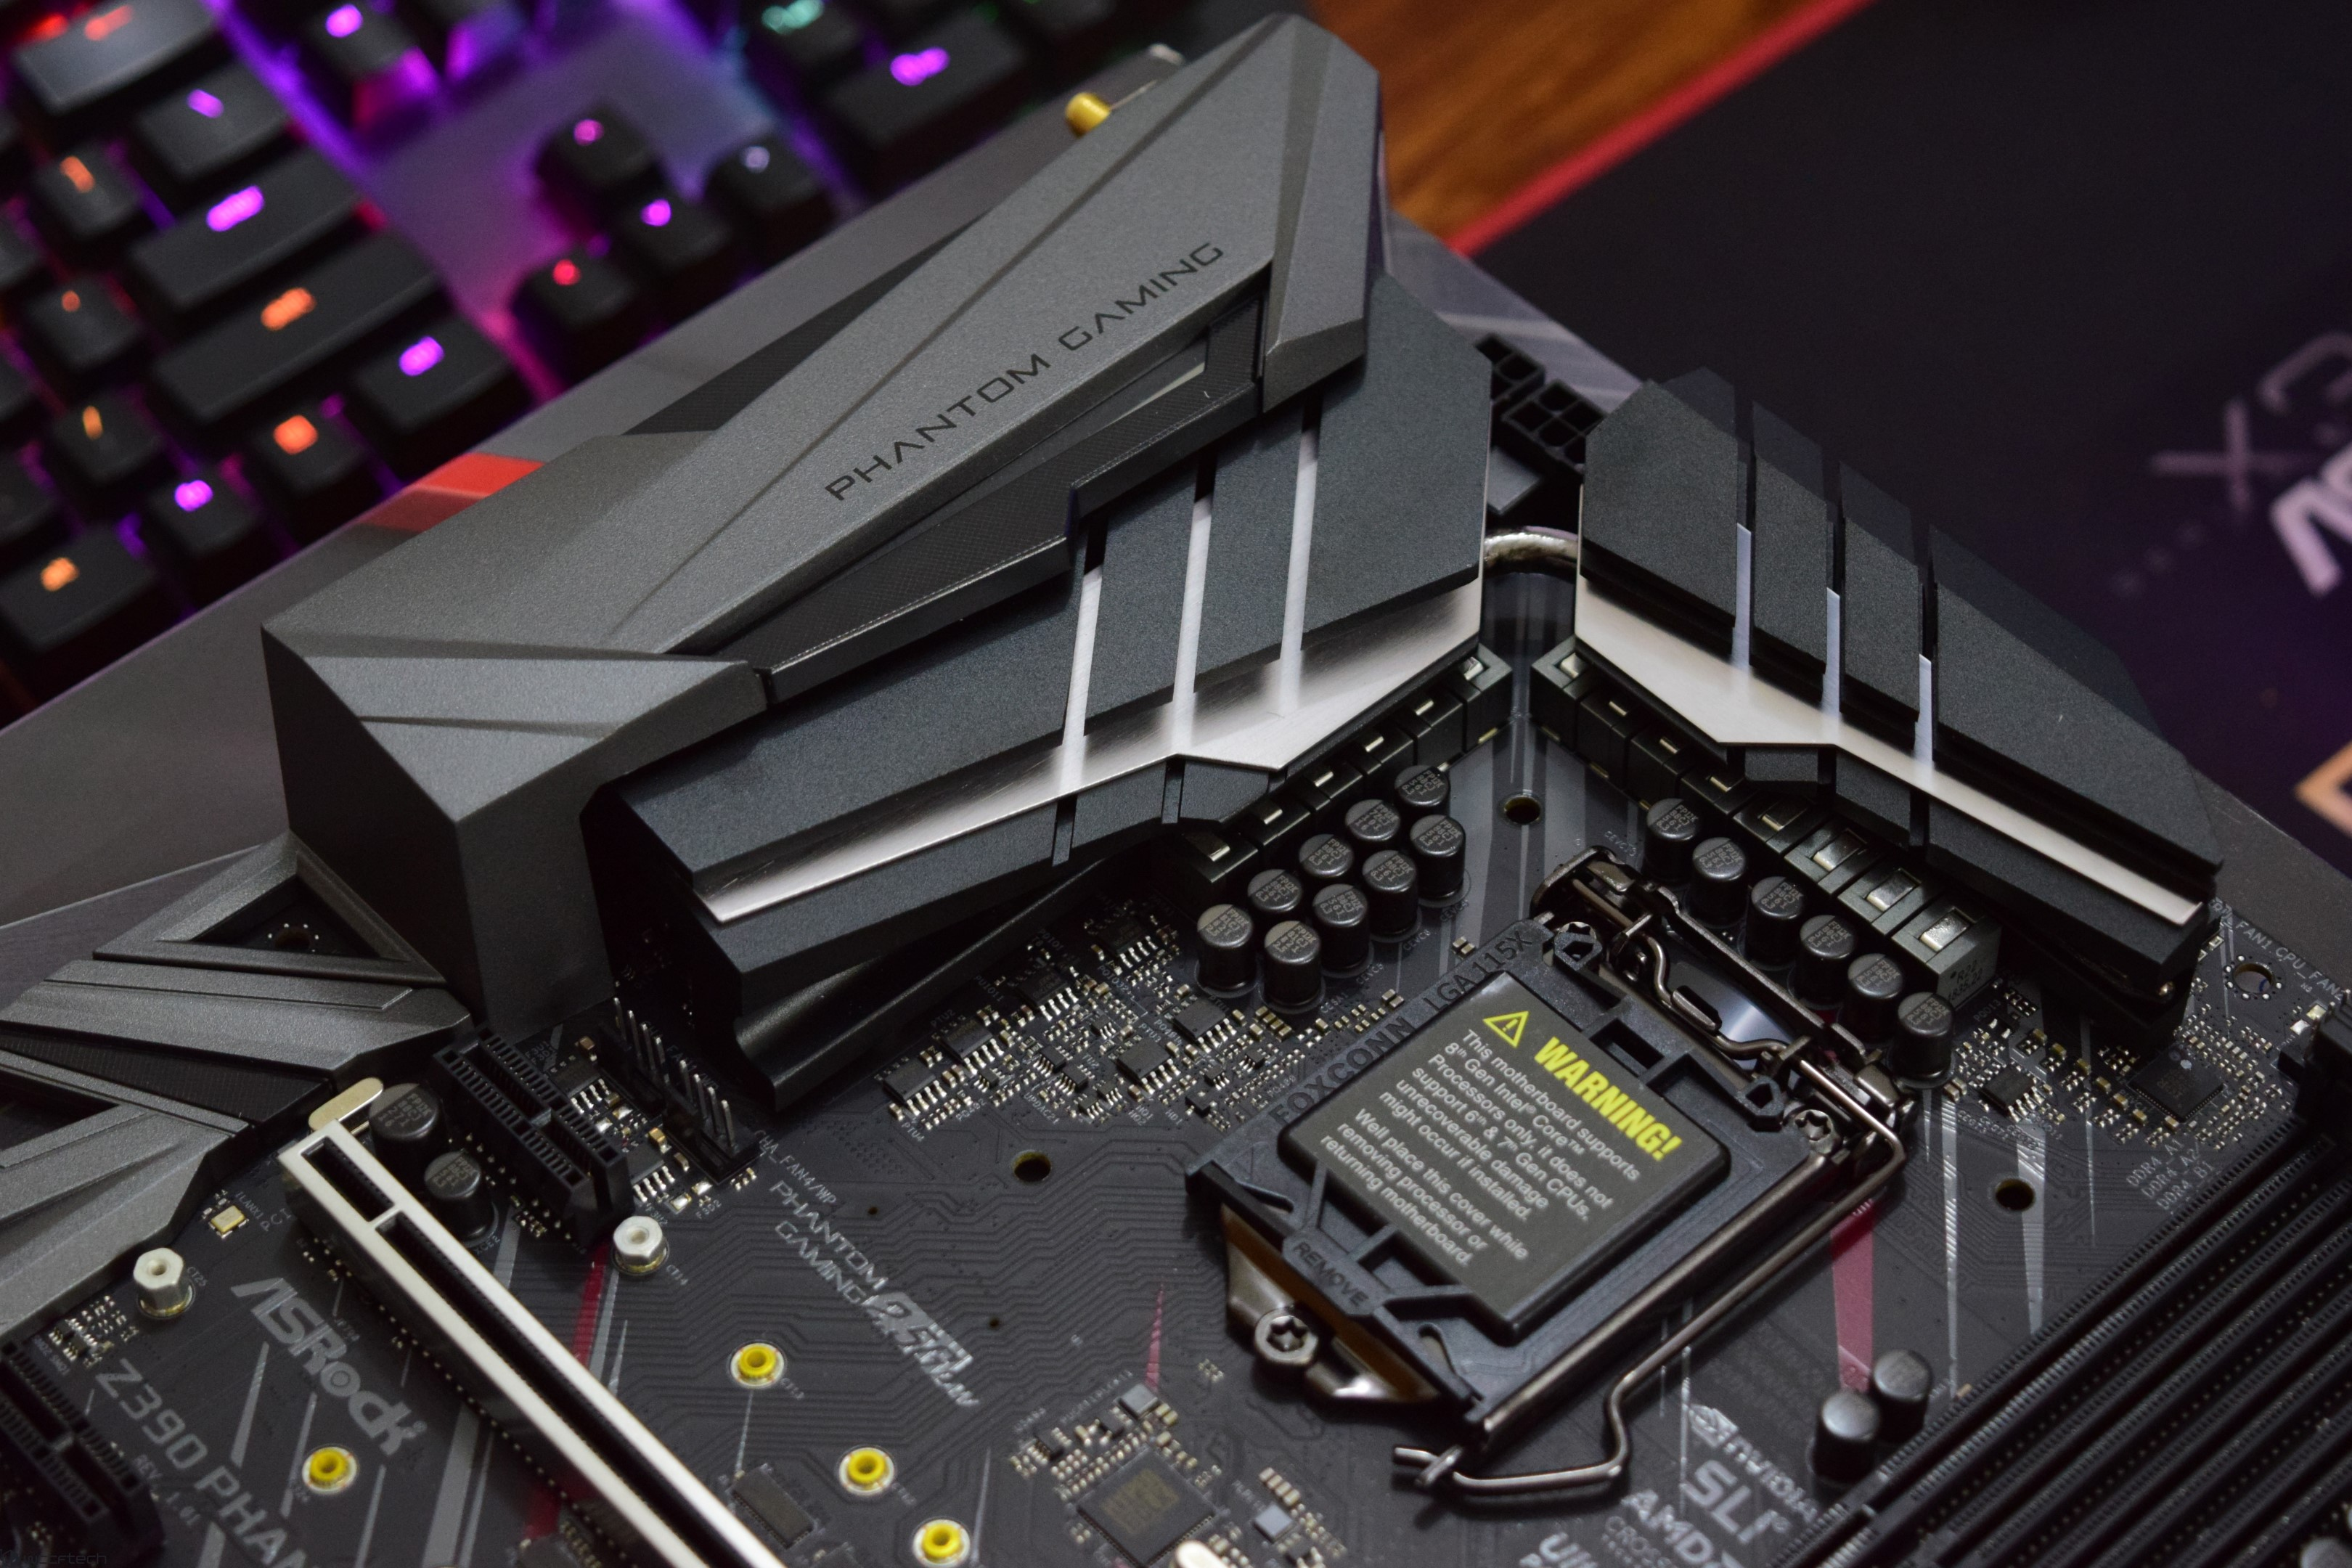 ASRock Z390 Phantom Gaming 9 Motherboard Review – Phantom Gaming